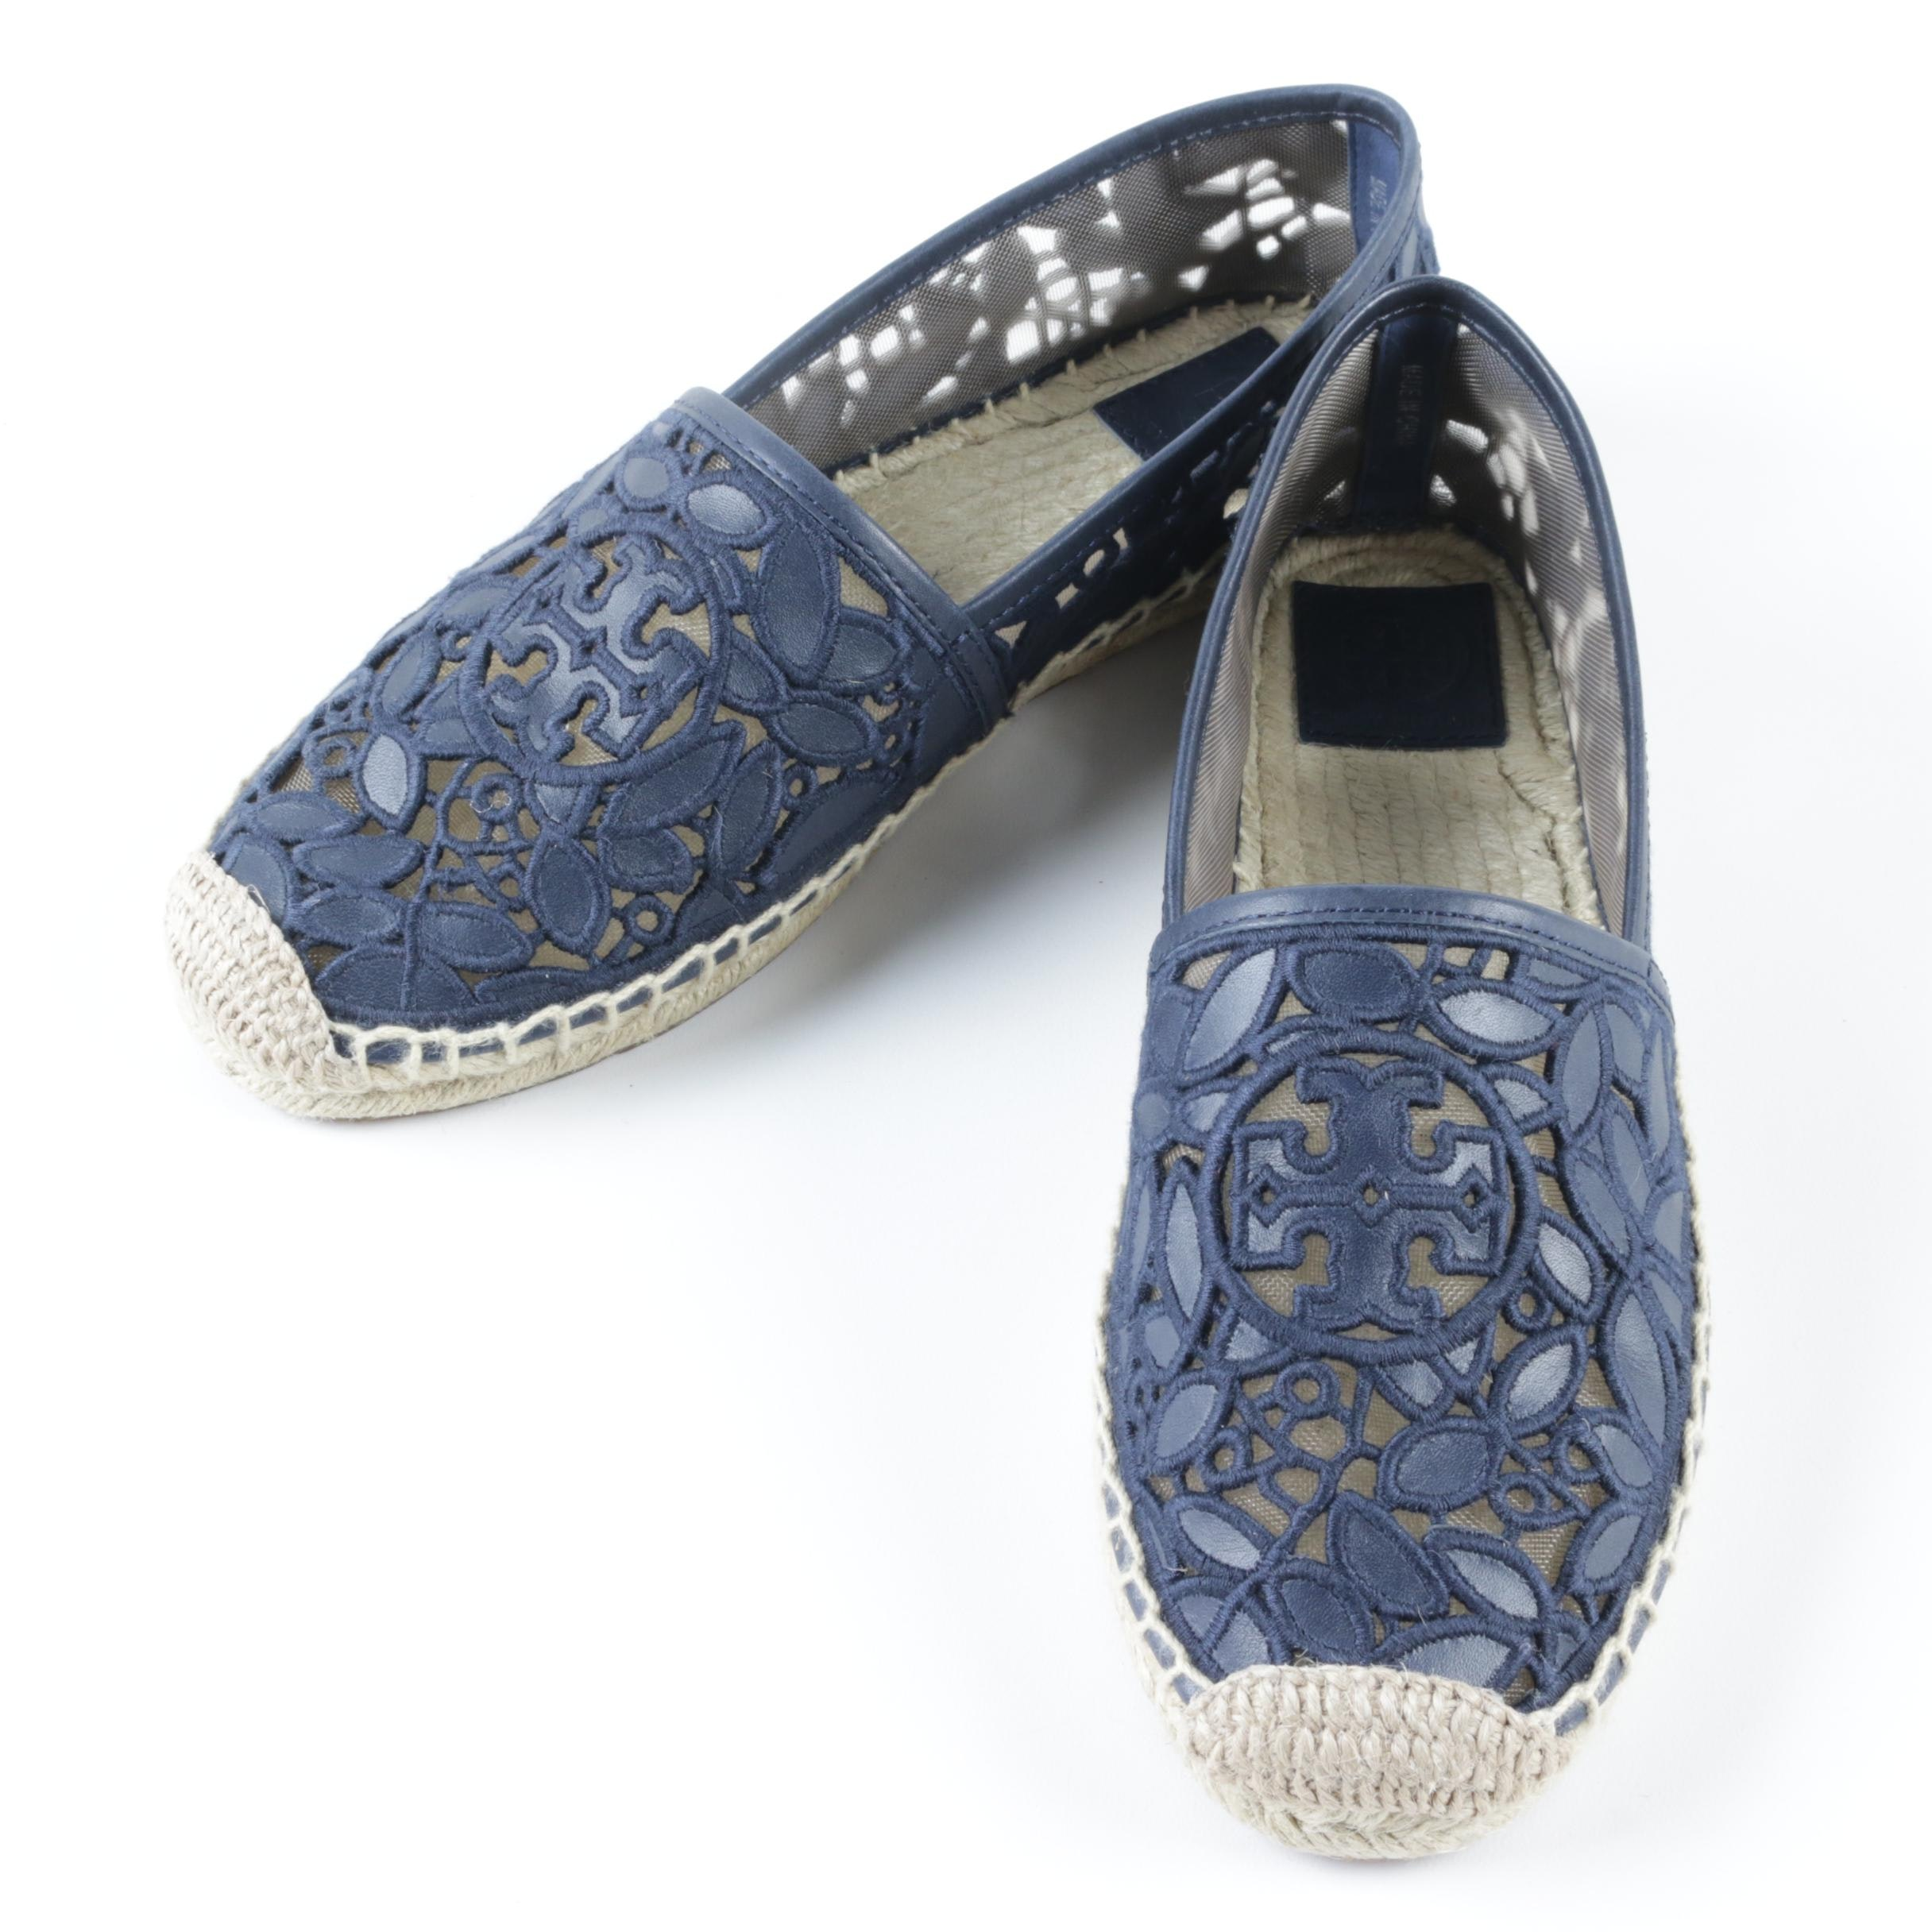 Tory Burch Textile and Leather Espadrilles